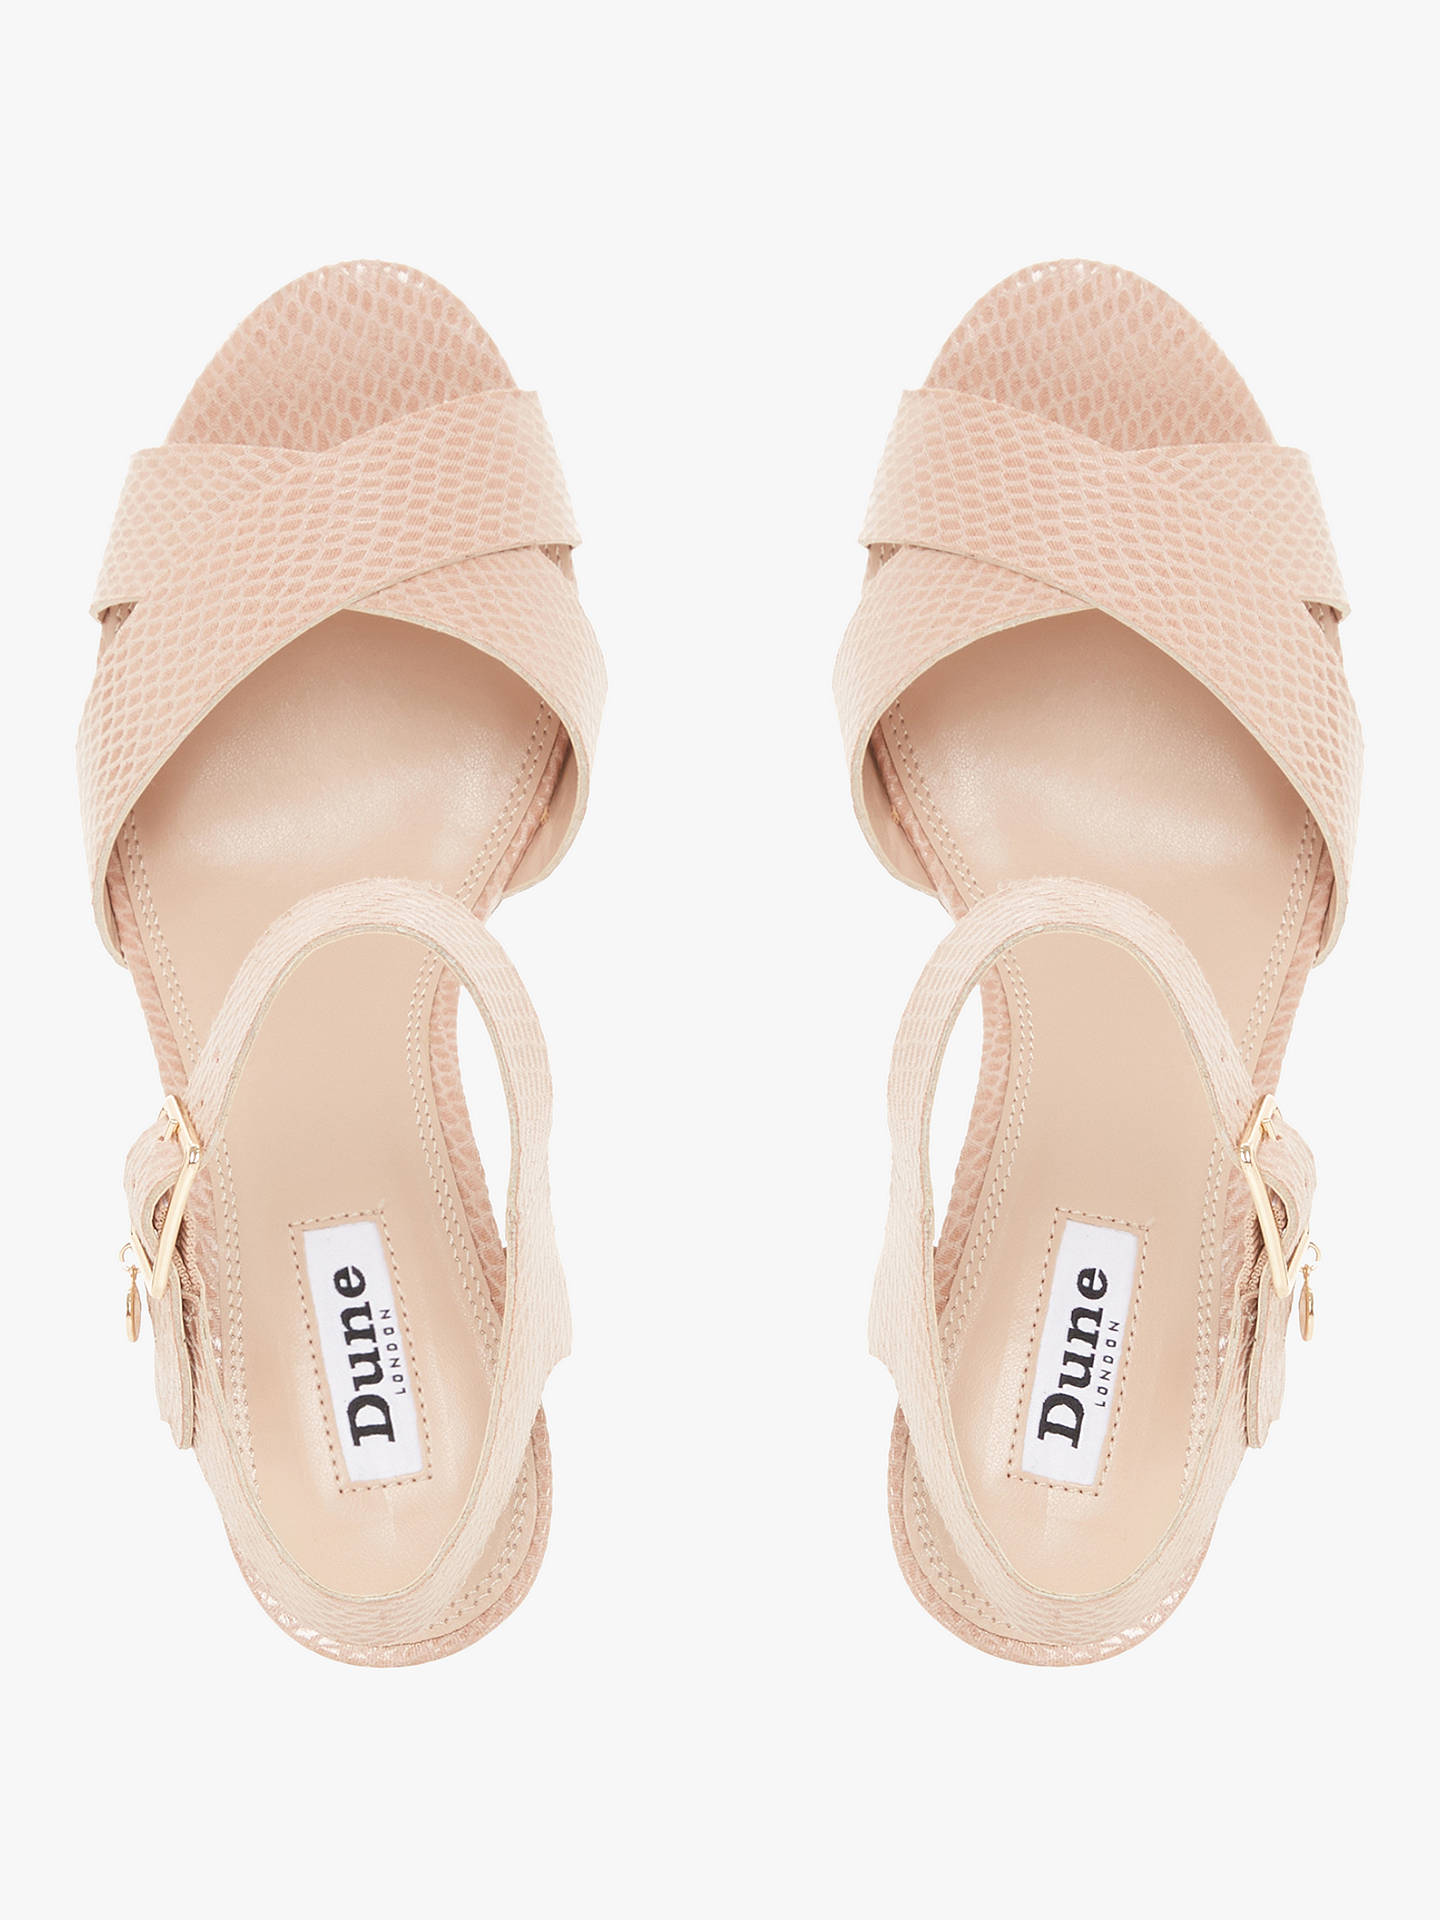 Buy Dune Iylene Reptile Cork Heel Sandals, Nude, 8 Online at johnlewis.com